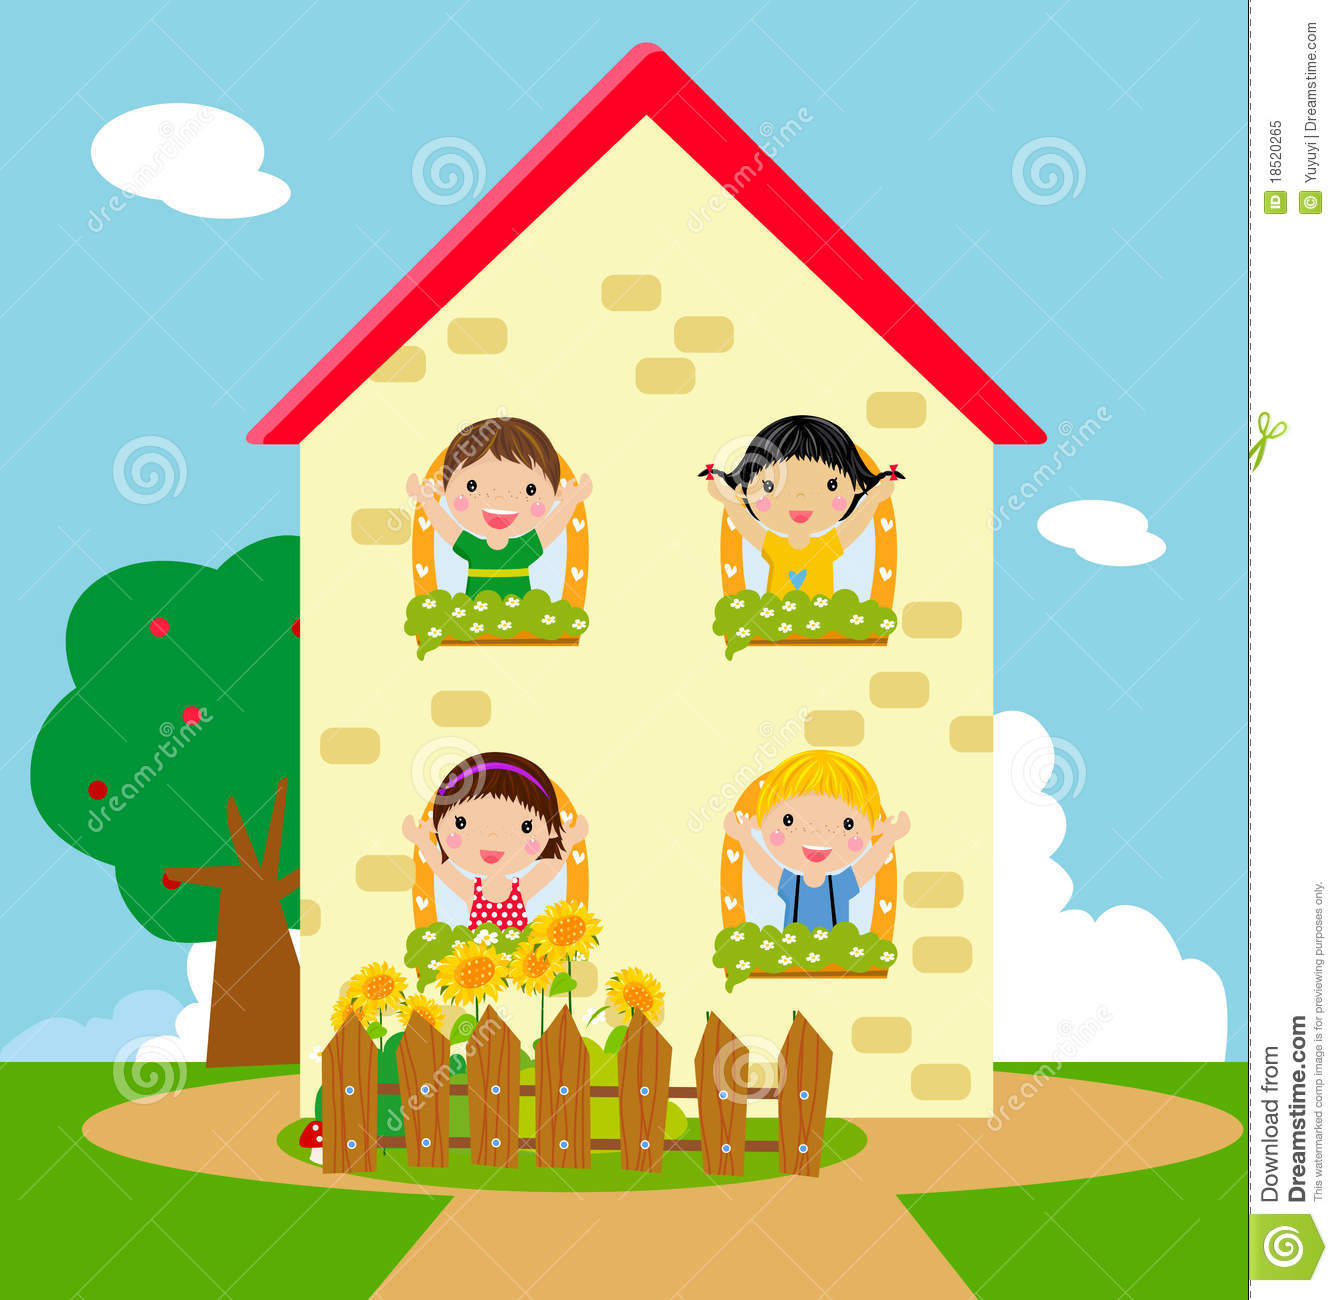 Kids and house royalty free stock photo image 18520265 for House pics for kids